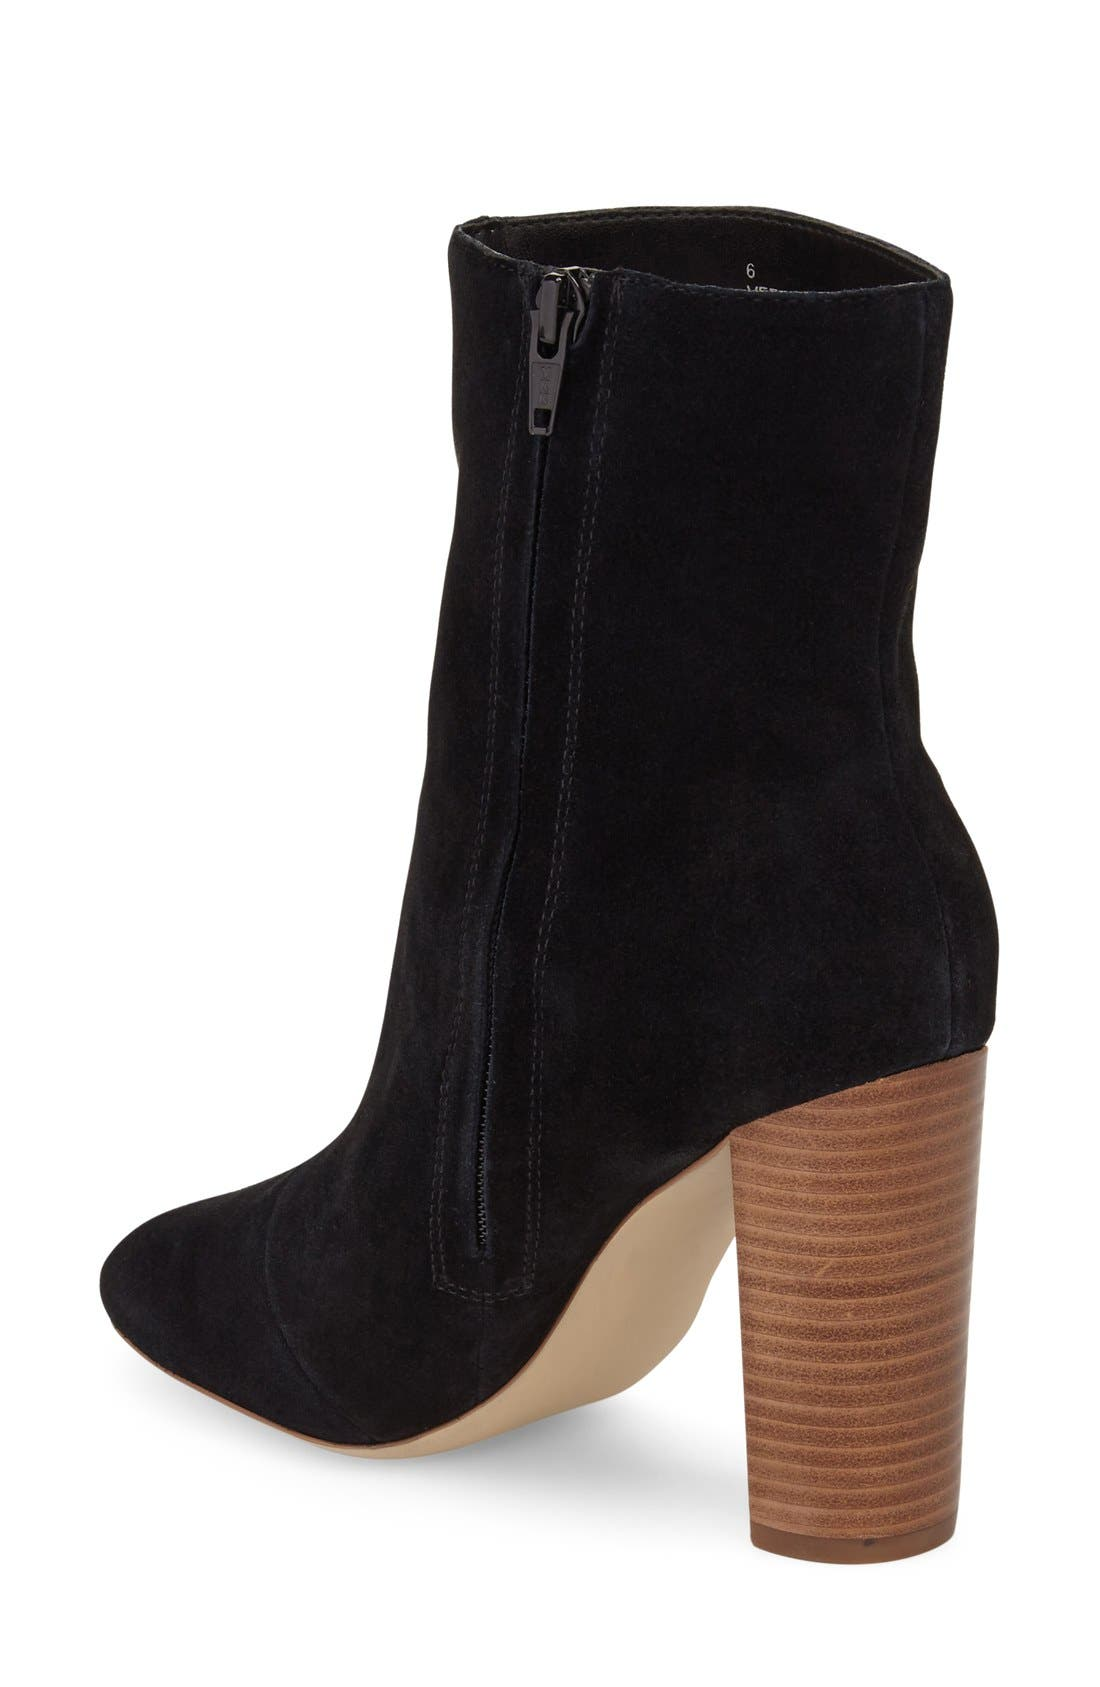 Veronica Bootie,                             Alternate thumbnail 2, color,                             003